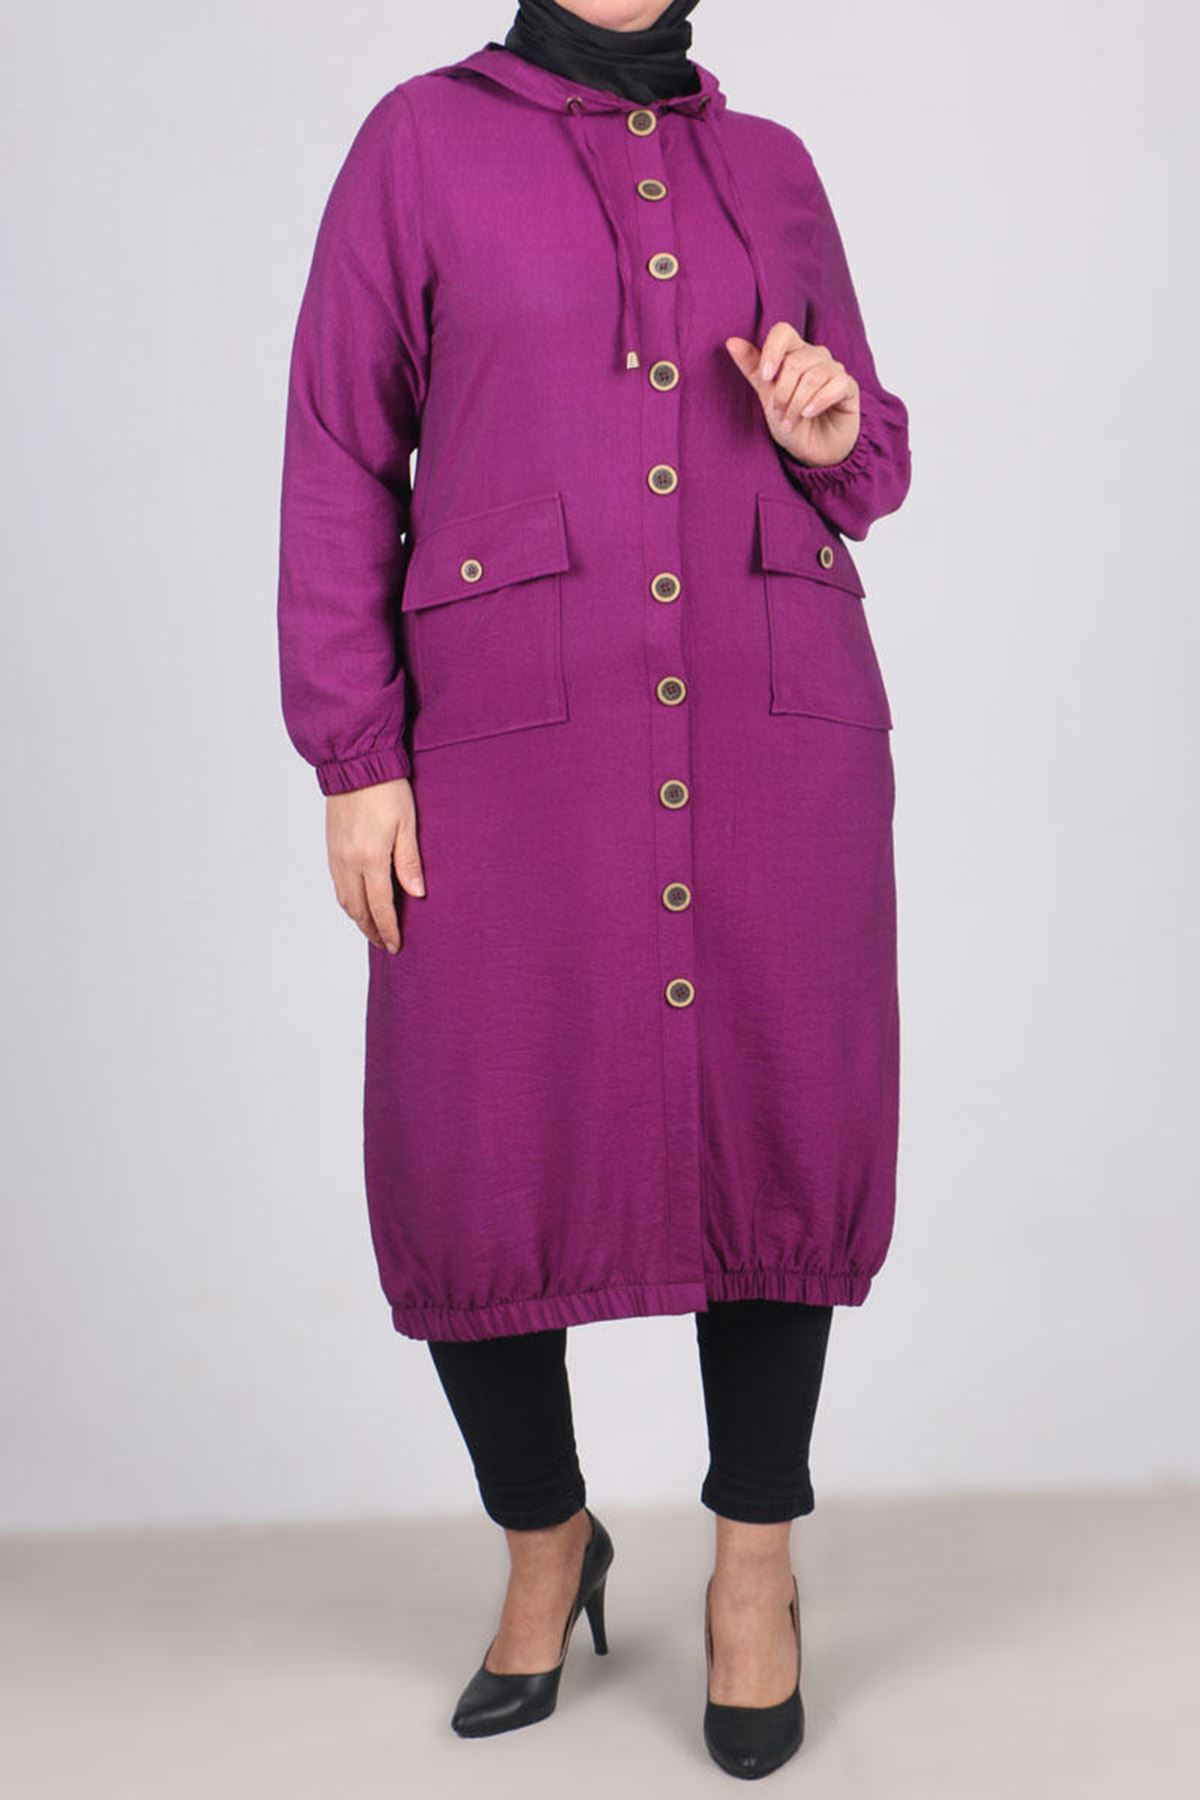 3125 Plus Size Coat with Pocket and Button- Plum